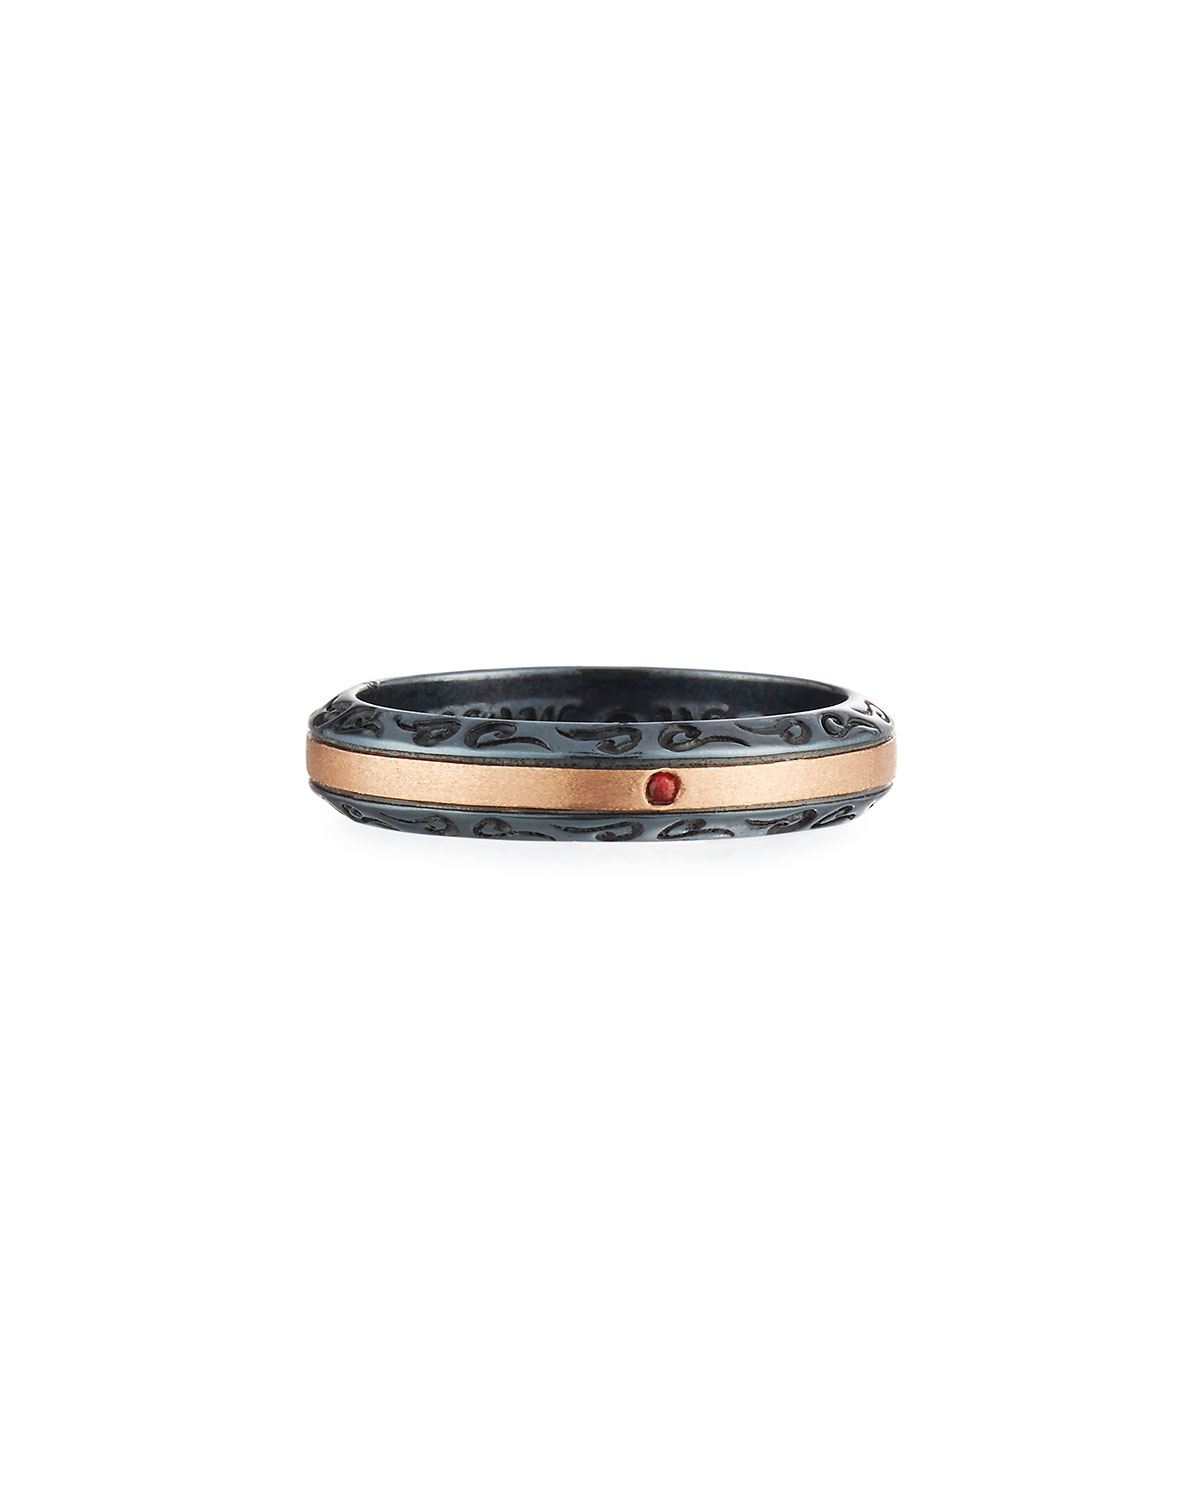 Ara Burnished Silver & 18K Rose Gold Band Ring with Red Sapphire